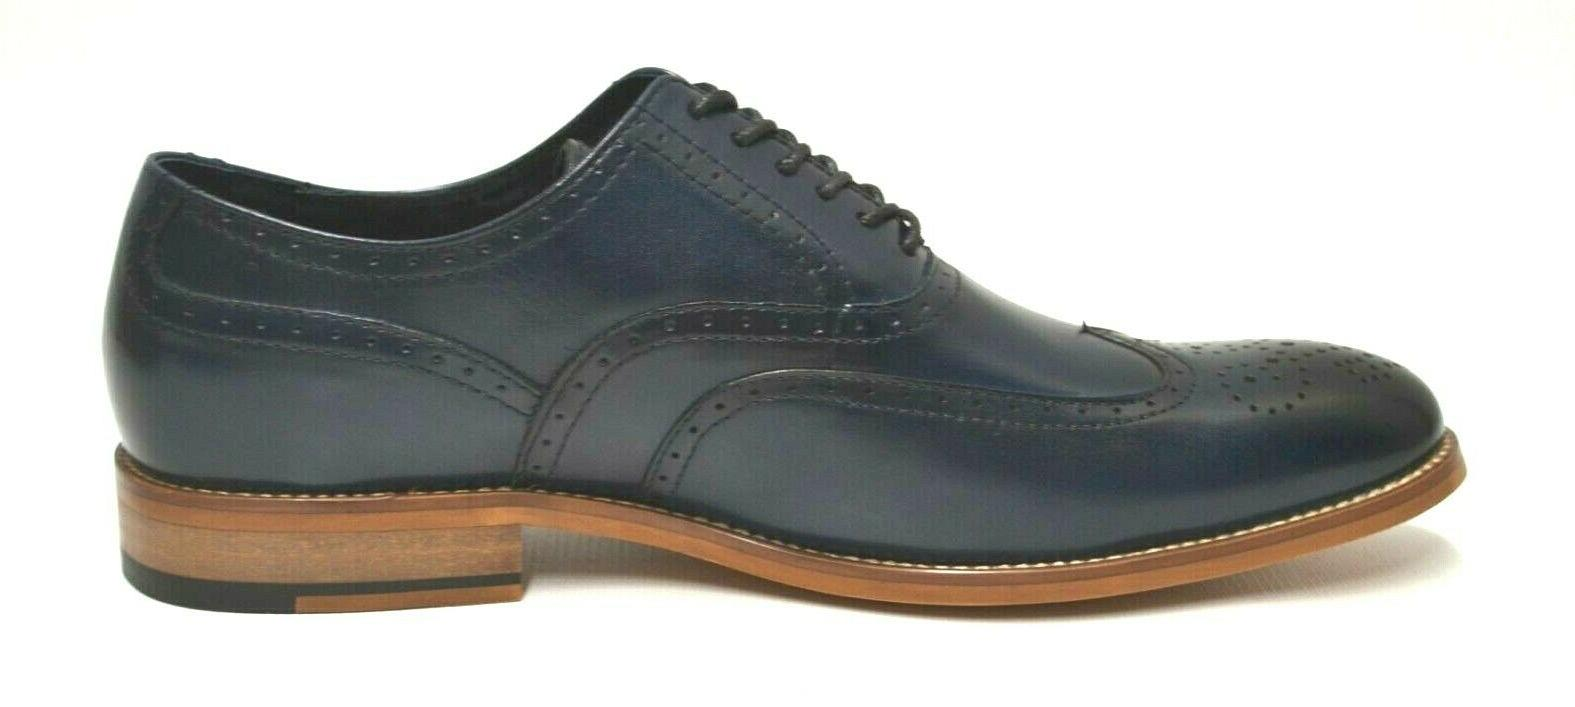 Men's Stacy Navy Oxford Shoes